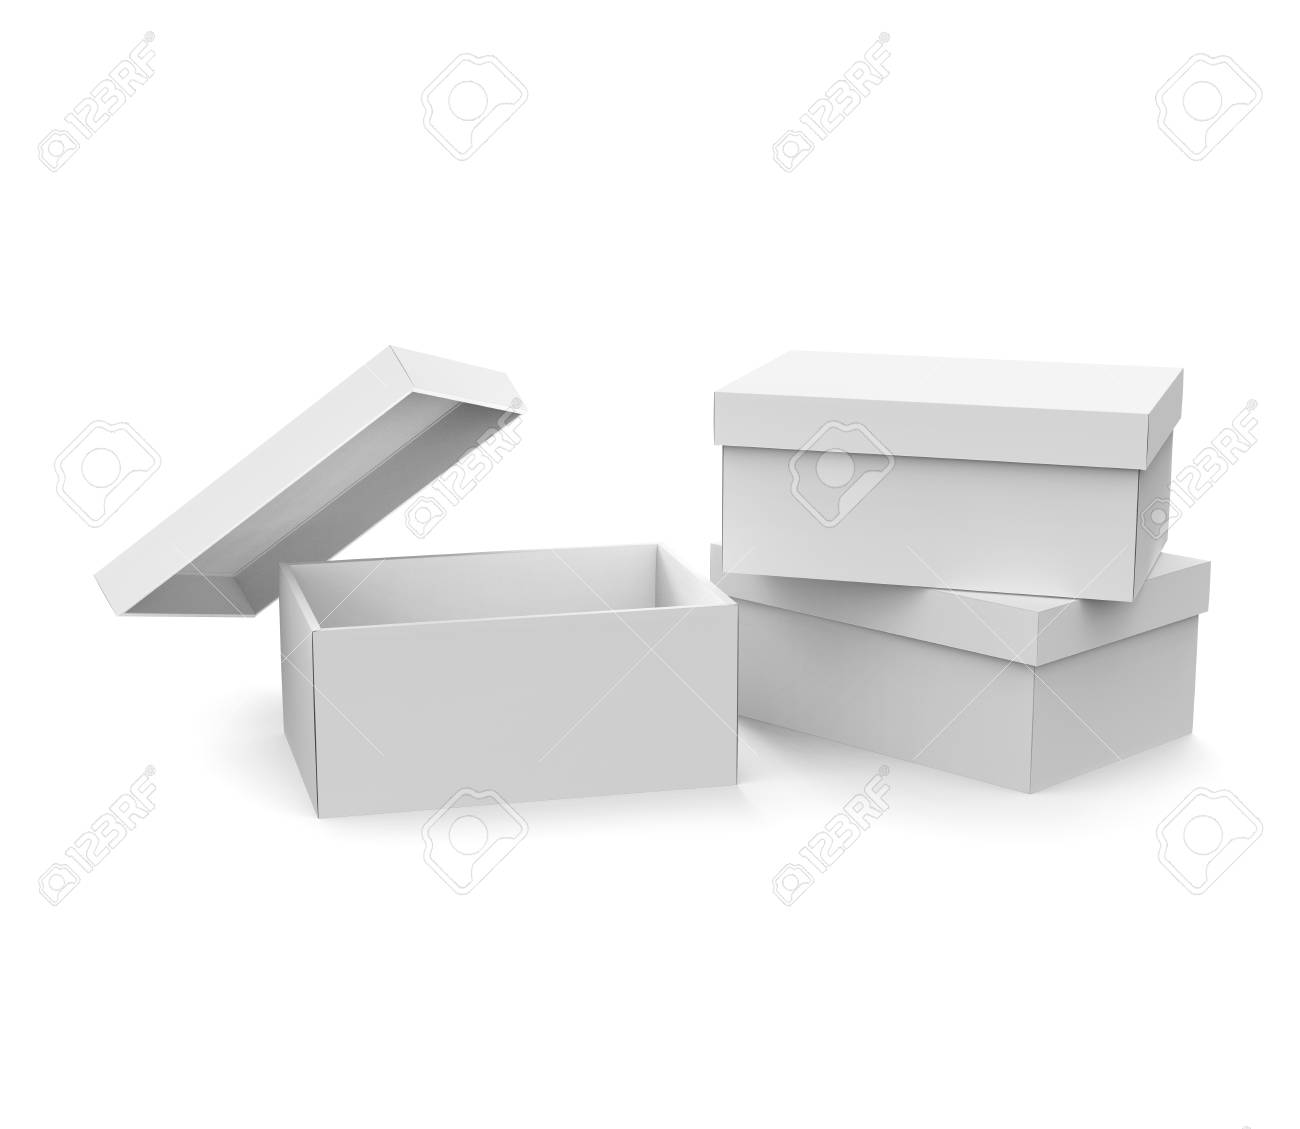 Blank Paper Box Template Three Boxes Mockup With Lid In 3d Rendering One Open